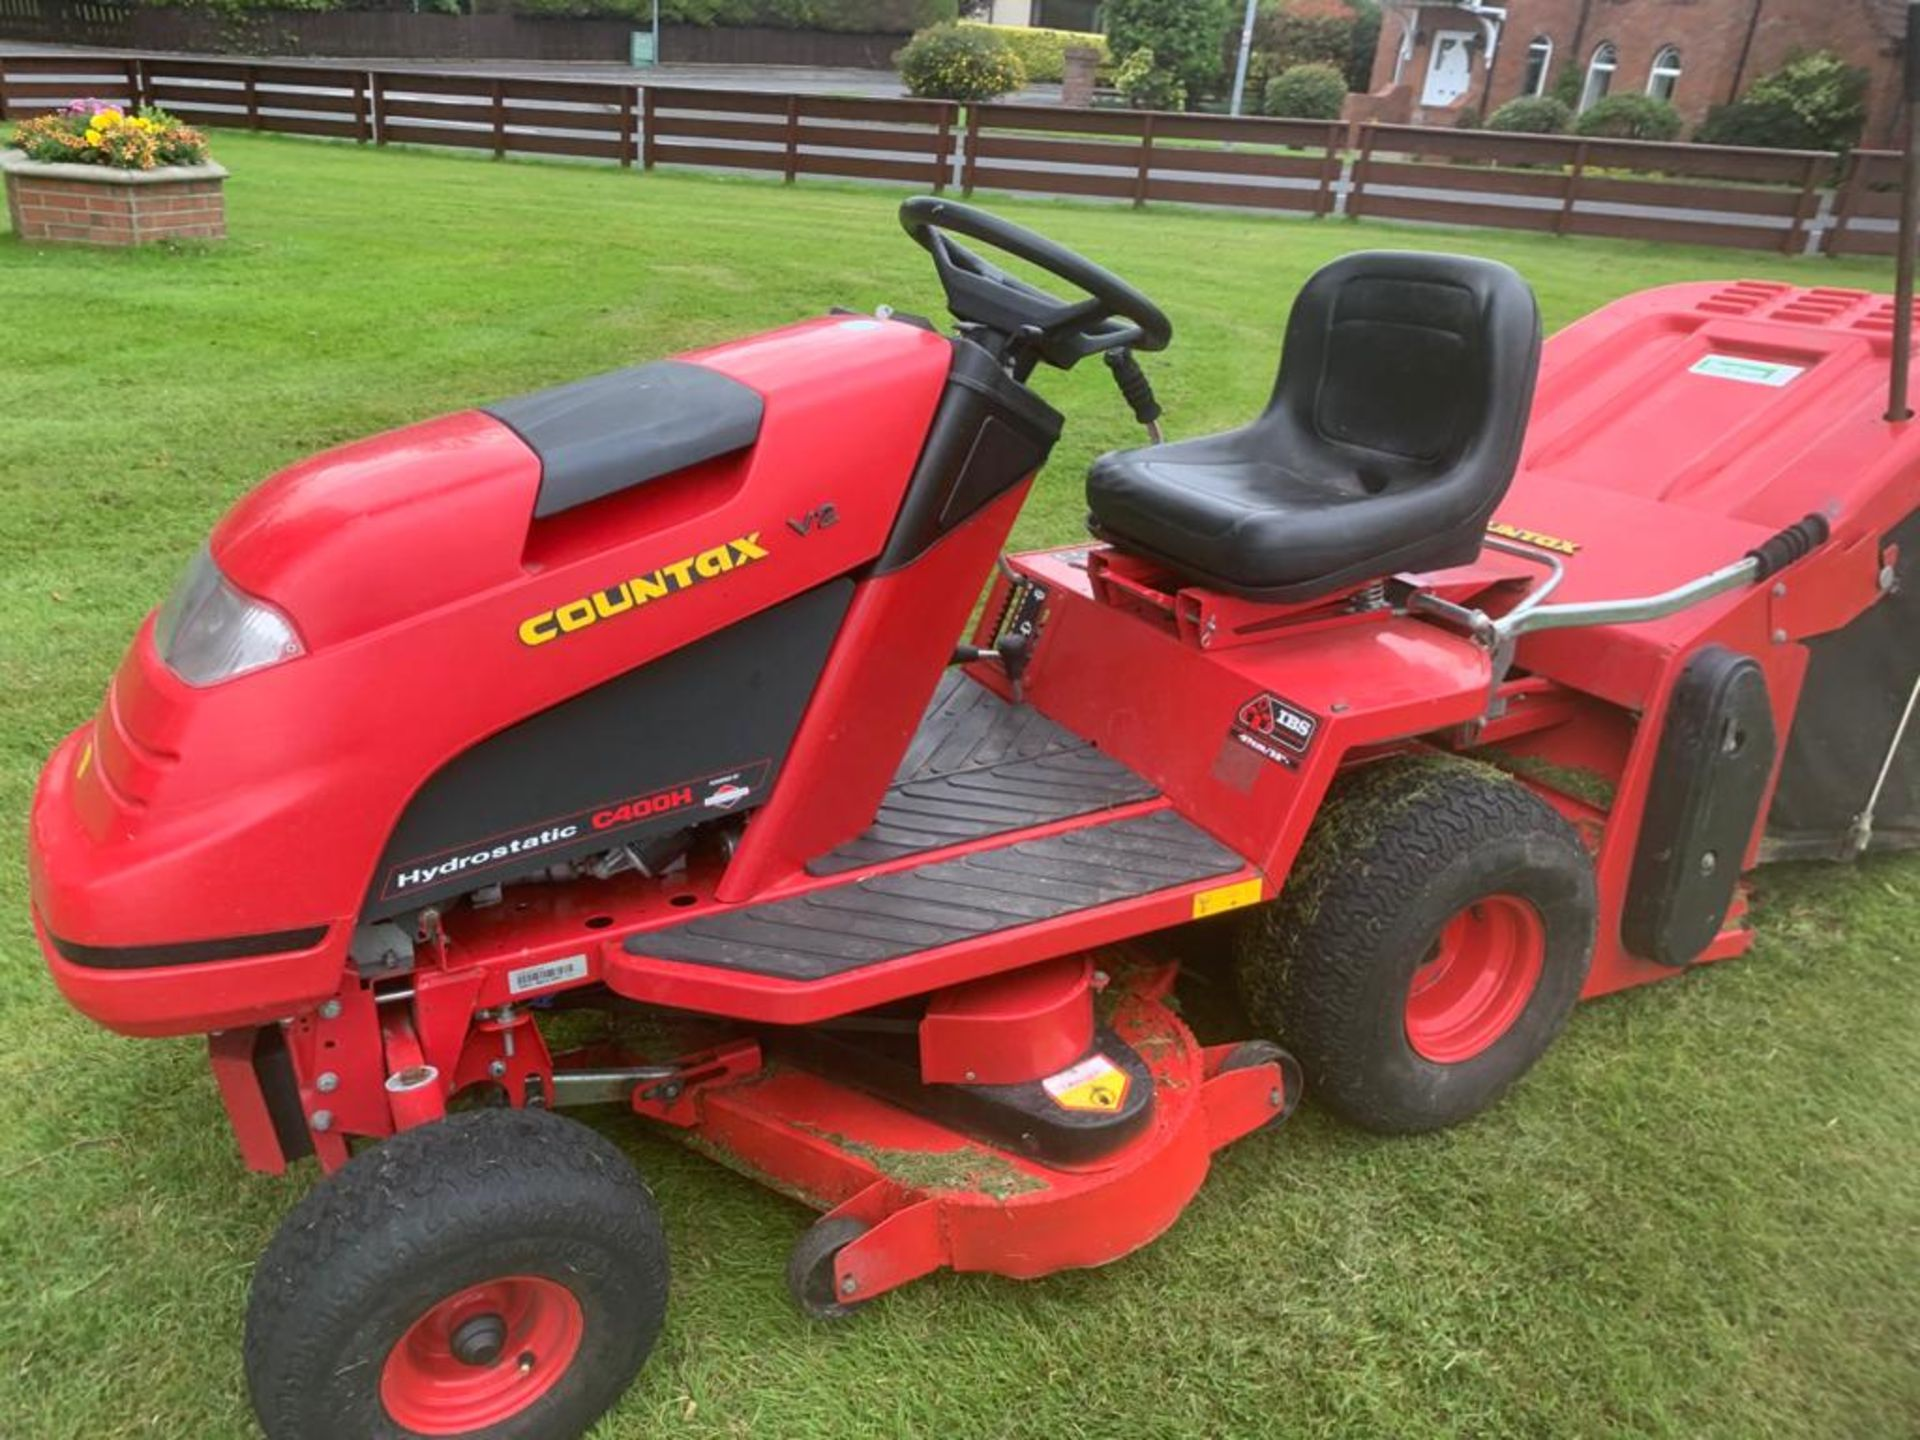 COUNTAX C400H HYDROSTATIC PETROL RIDE ON LAWN MOWER WITH SWEEPER *PLUS VAT*